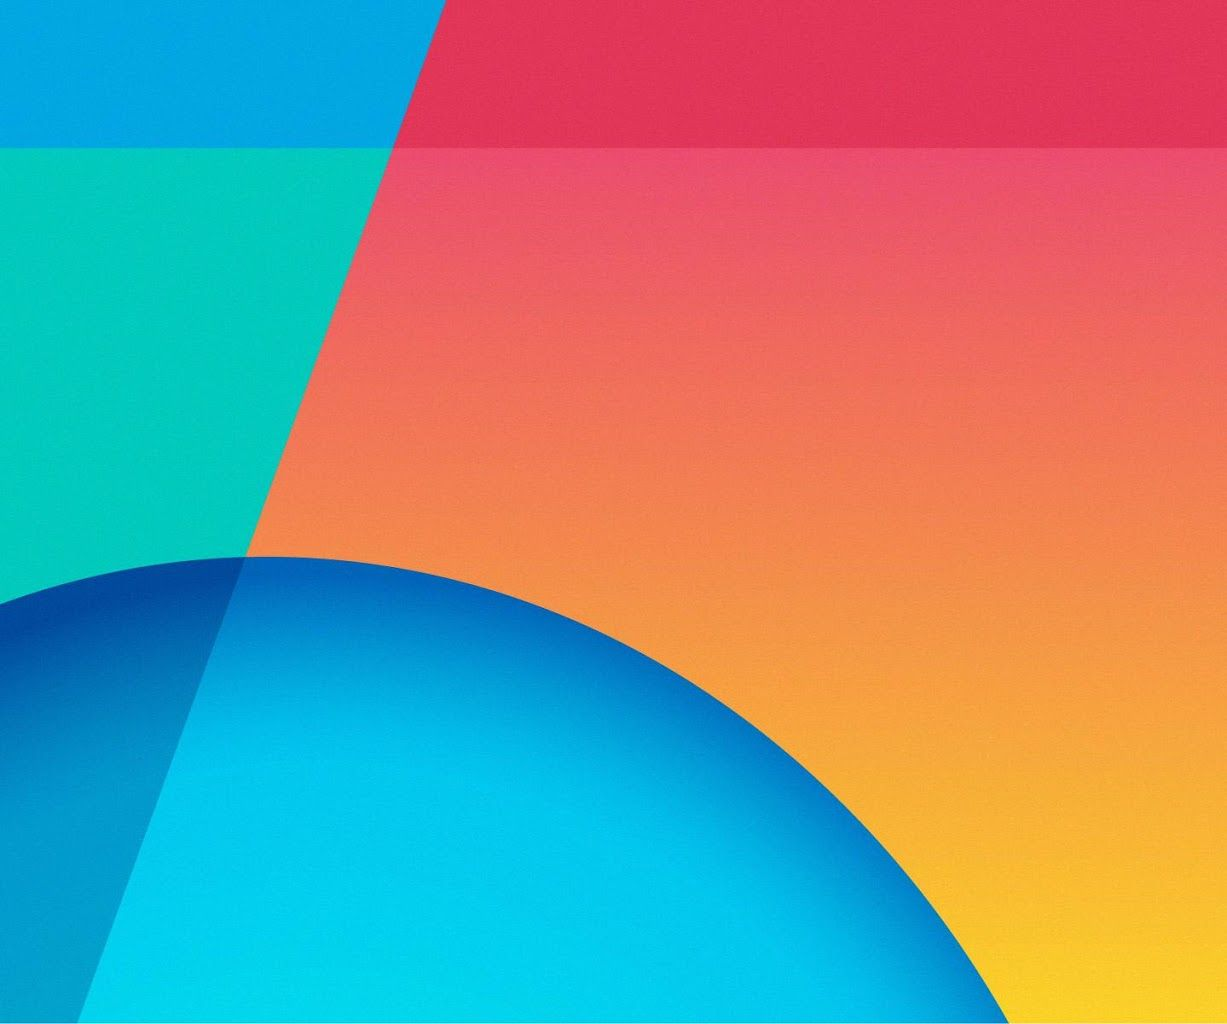 Nexus 5 Wallpaper Free Download